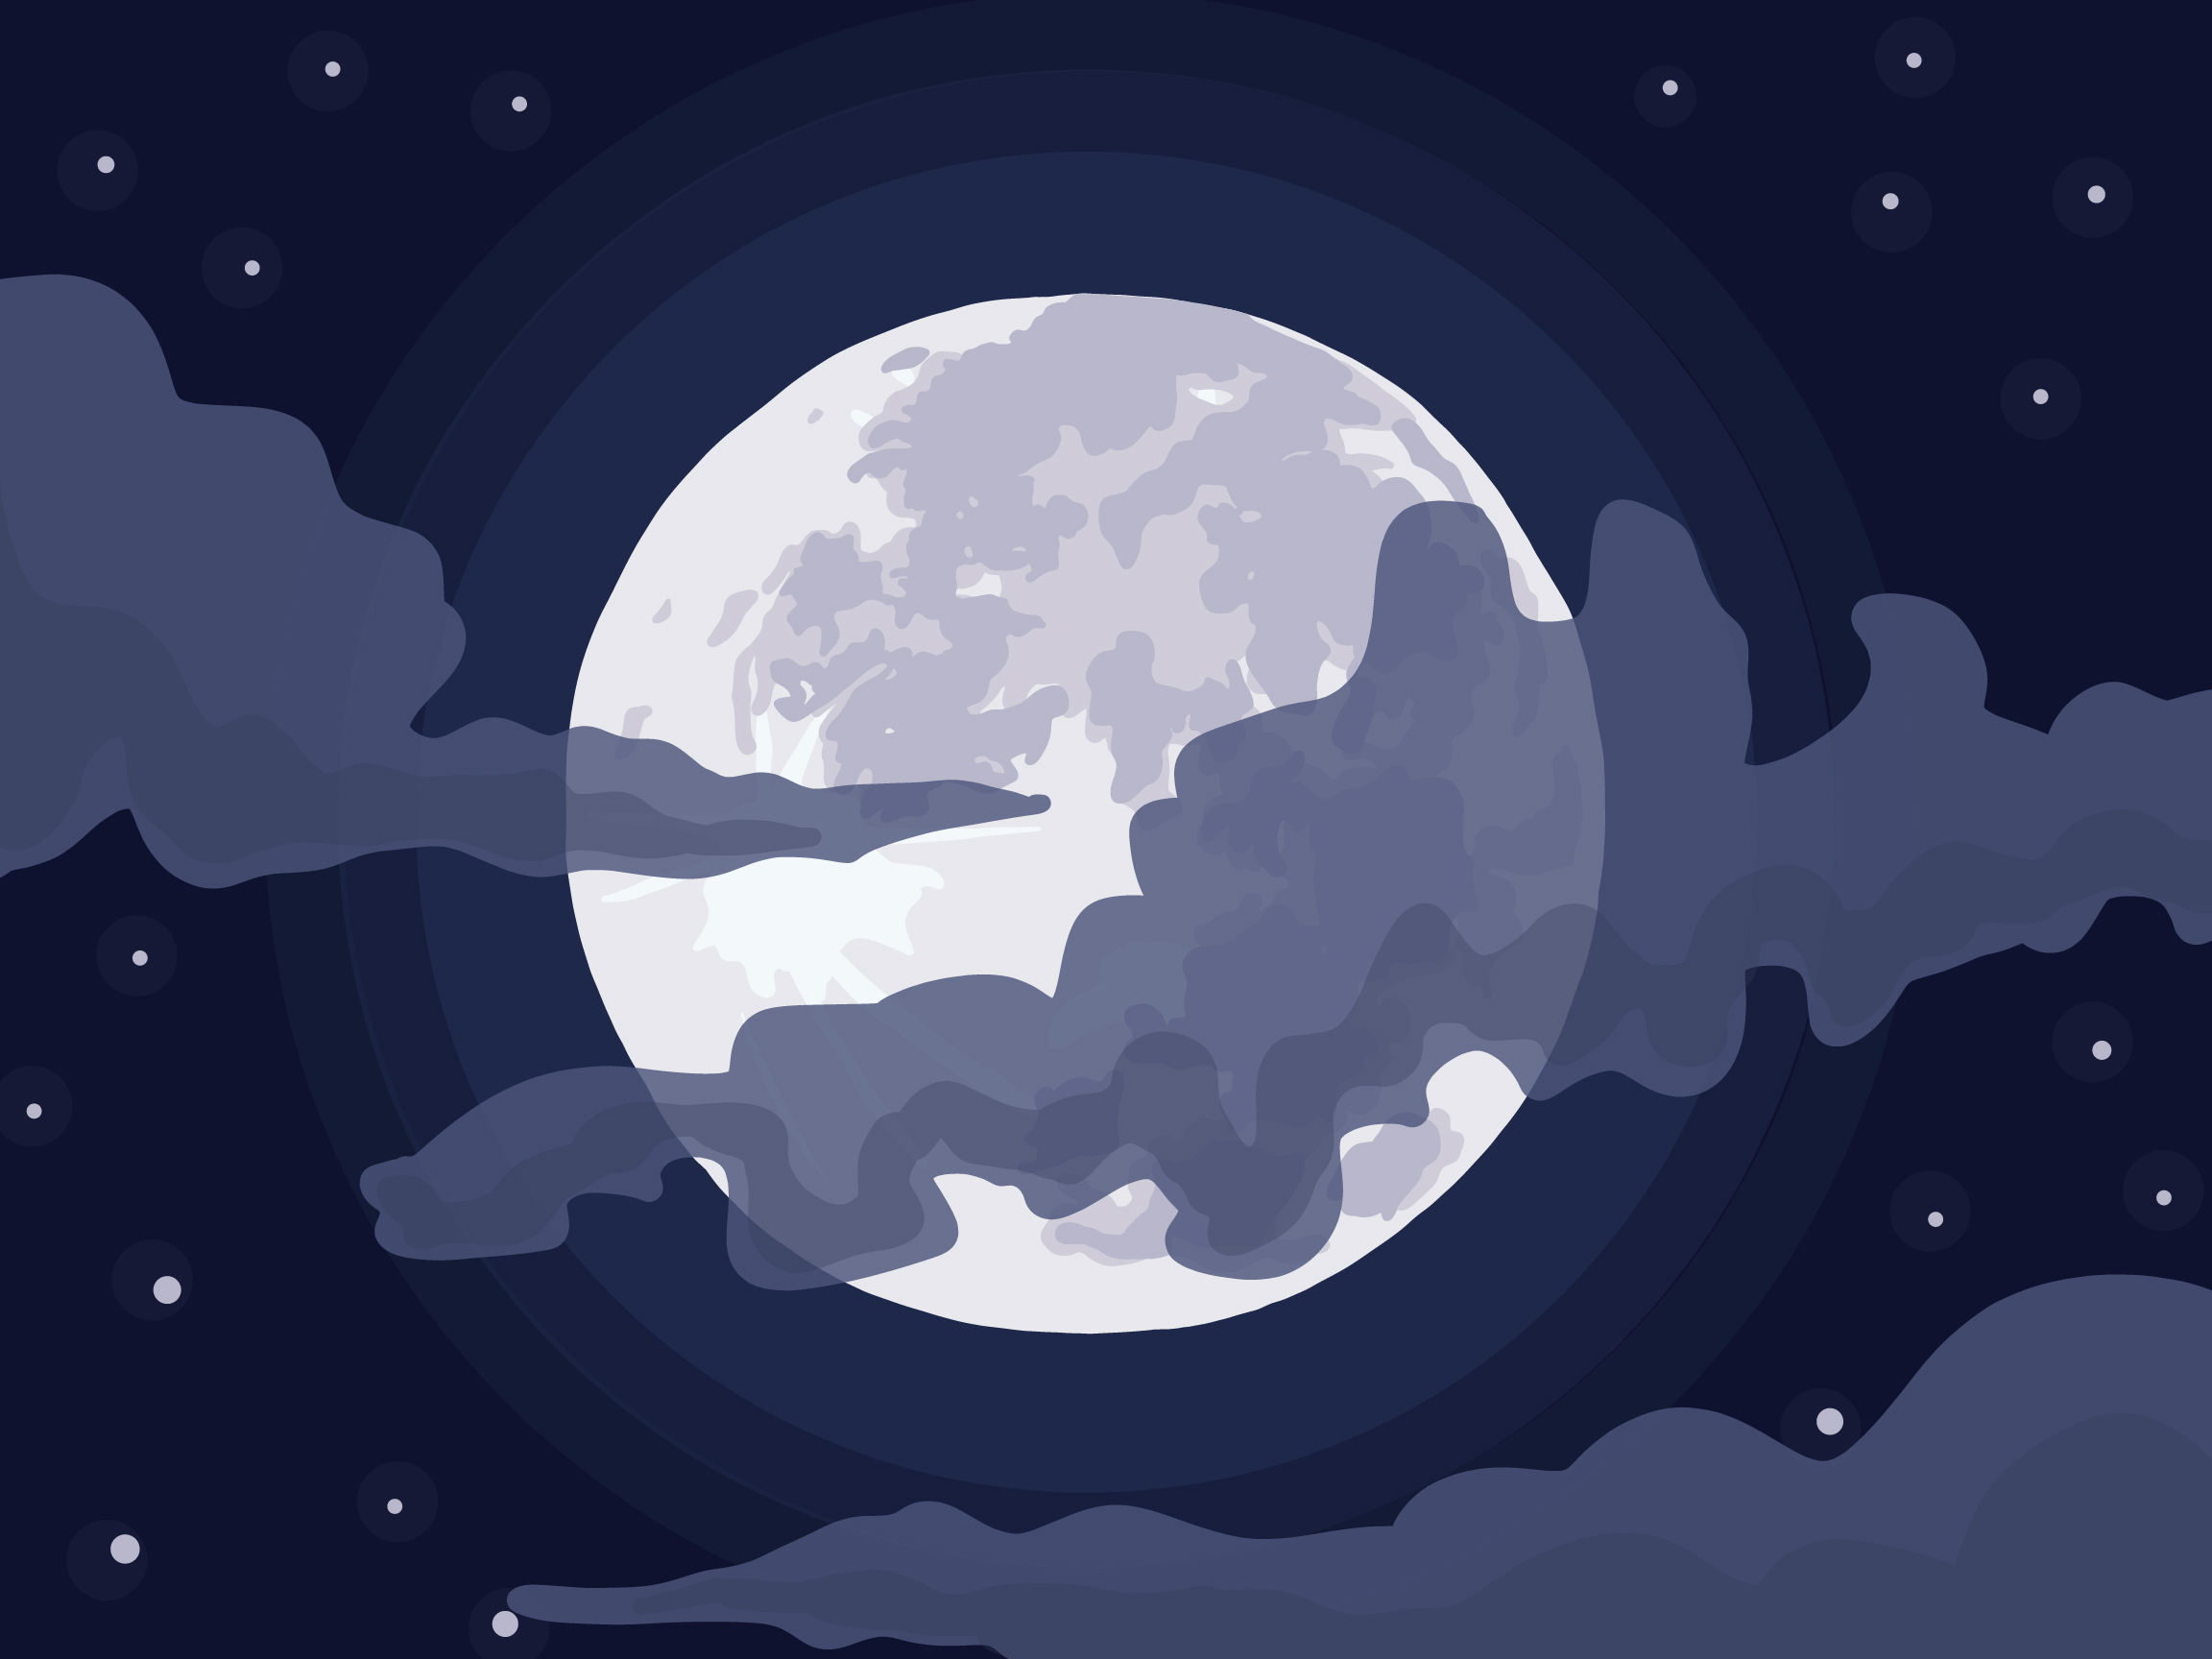 Lunacy: Is there a spike in crime during the full moon